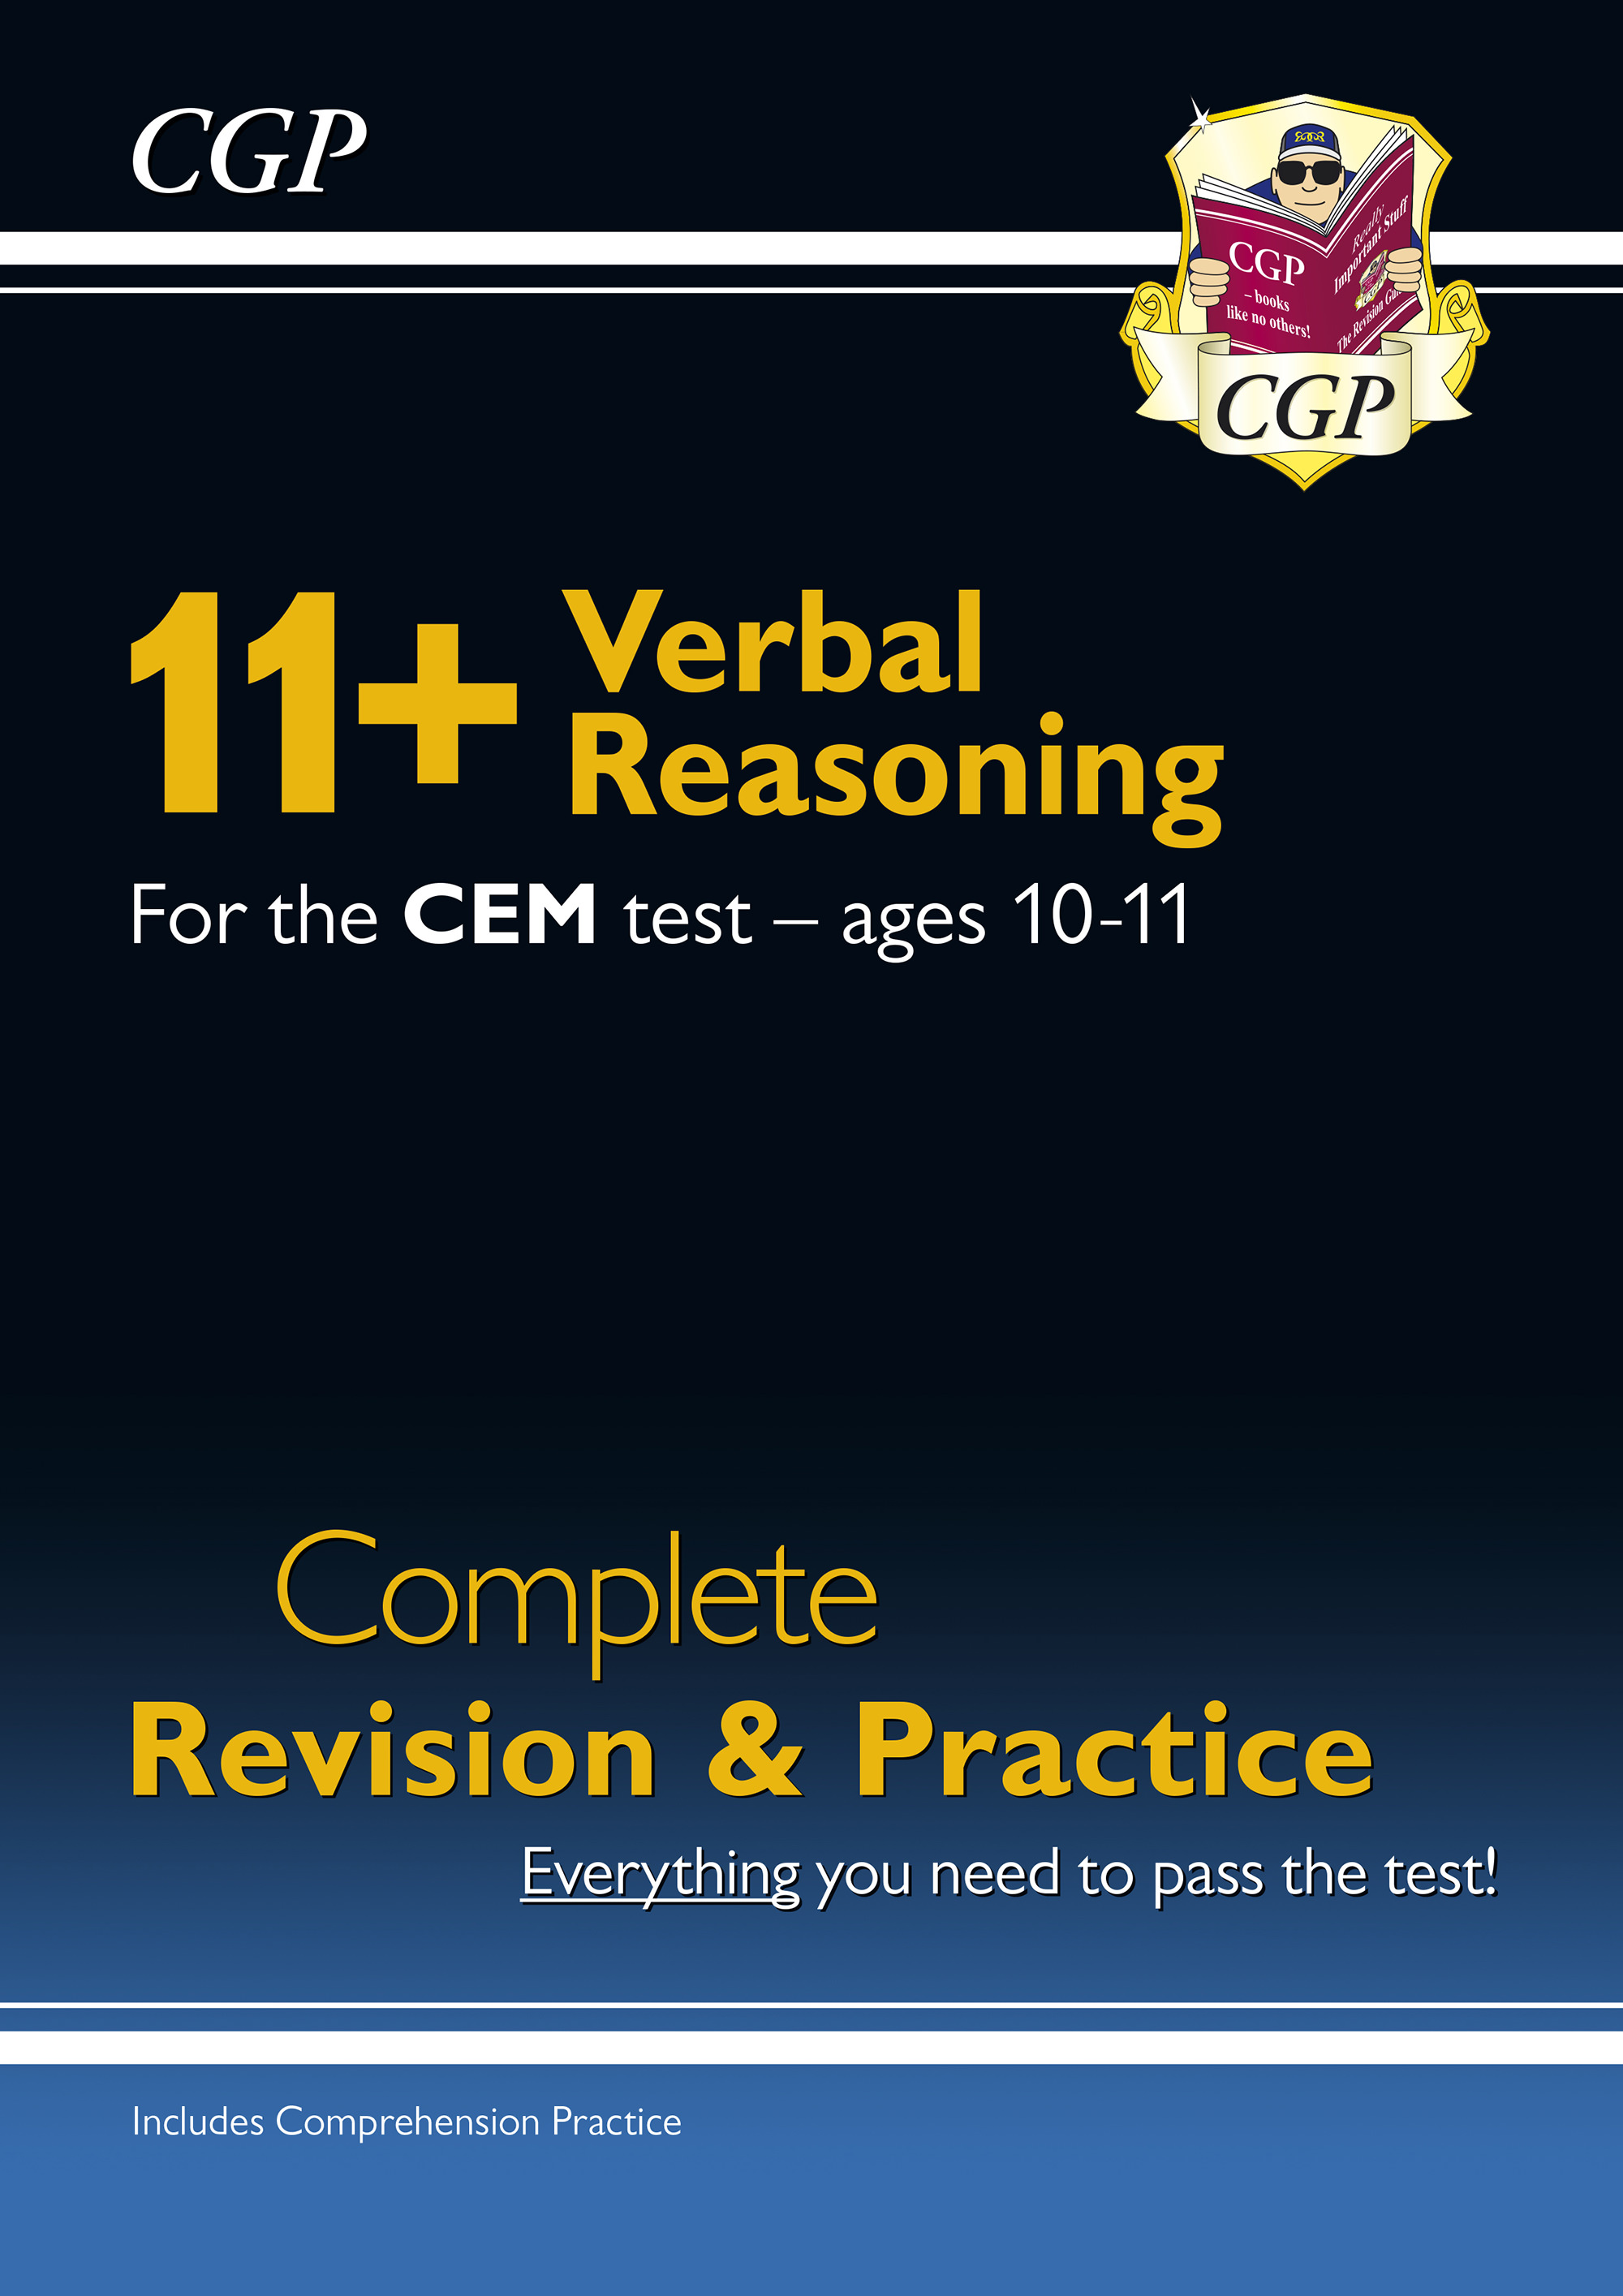 VHSDE1D - New 11+ CEM Verbal Reasoning Complete Revision and Practice - Ages 10-11 Online Edition